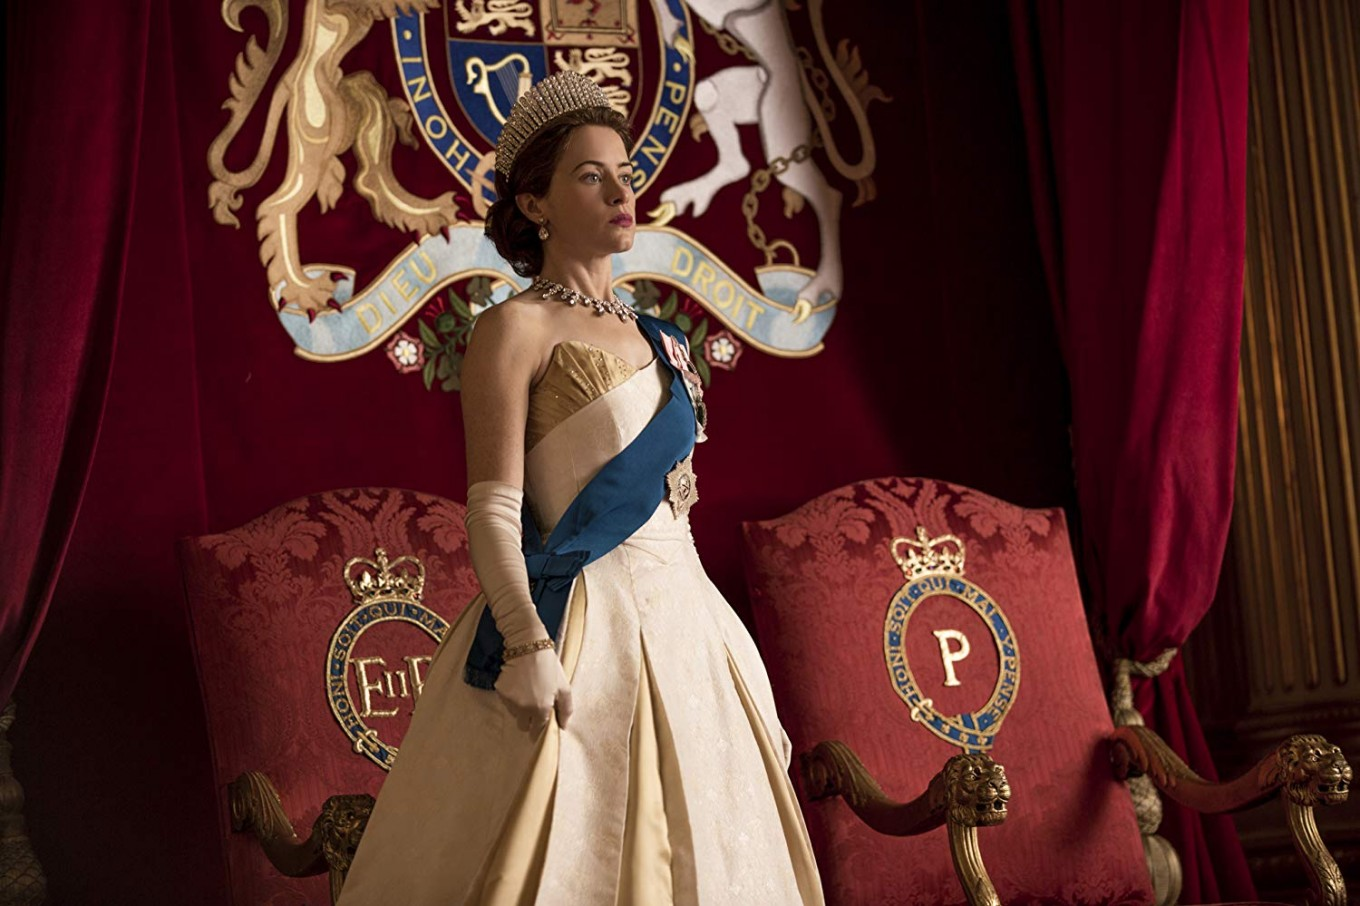 'The Crown' welcomes its new royals in Season 3 launch